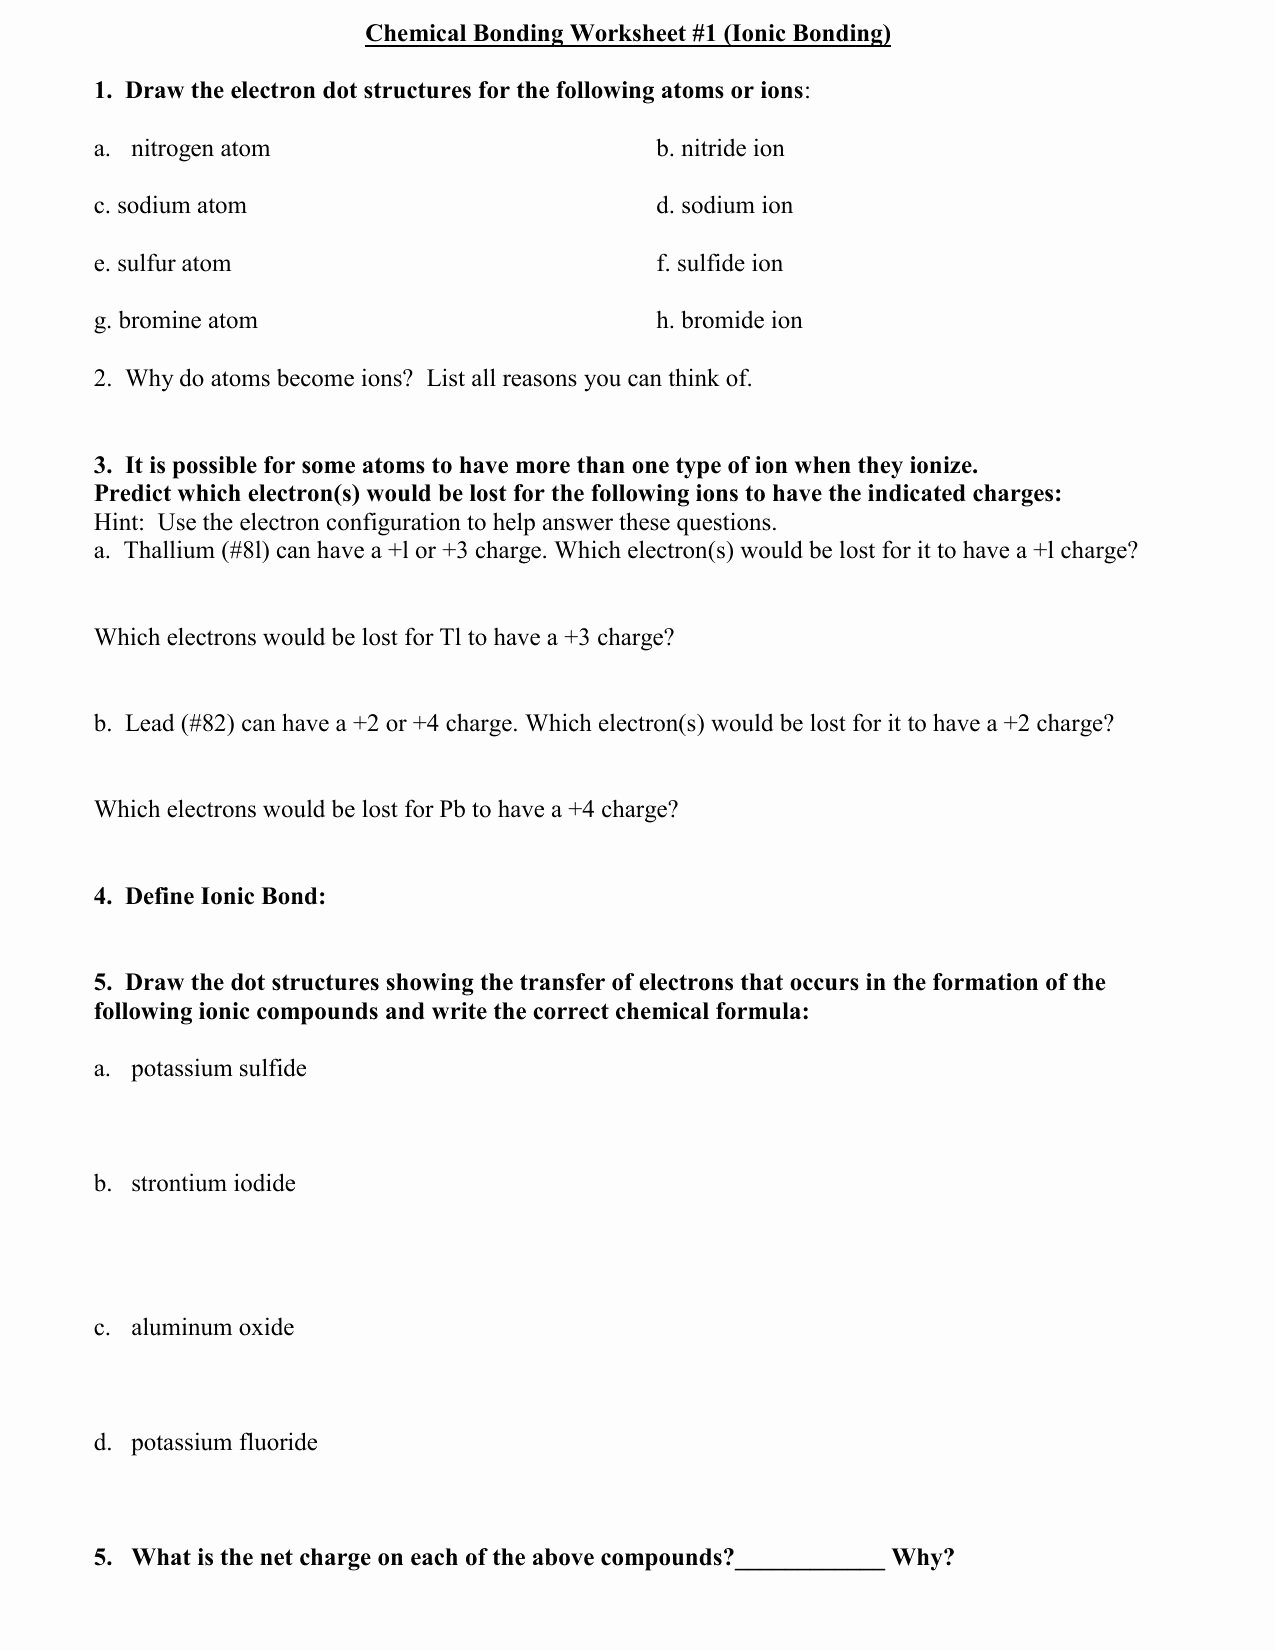 Lewis Structure Worksheet with Answers Inspirational Lewis Dot Structures Worksheet 1 Answer Key